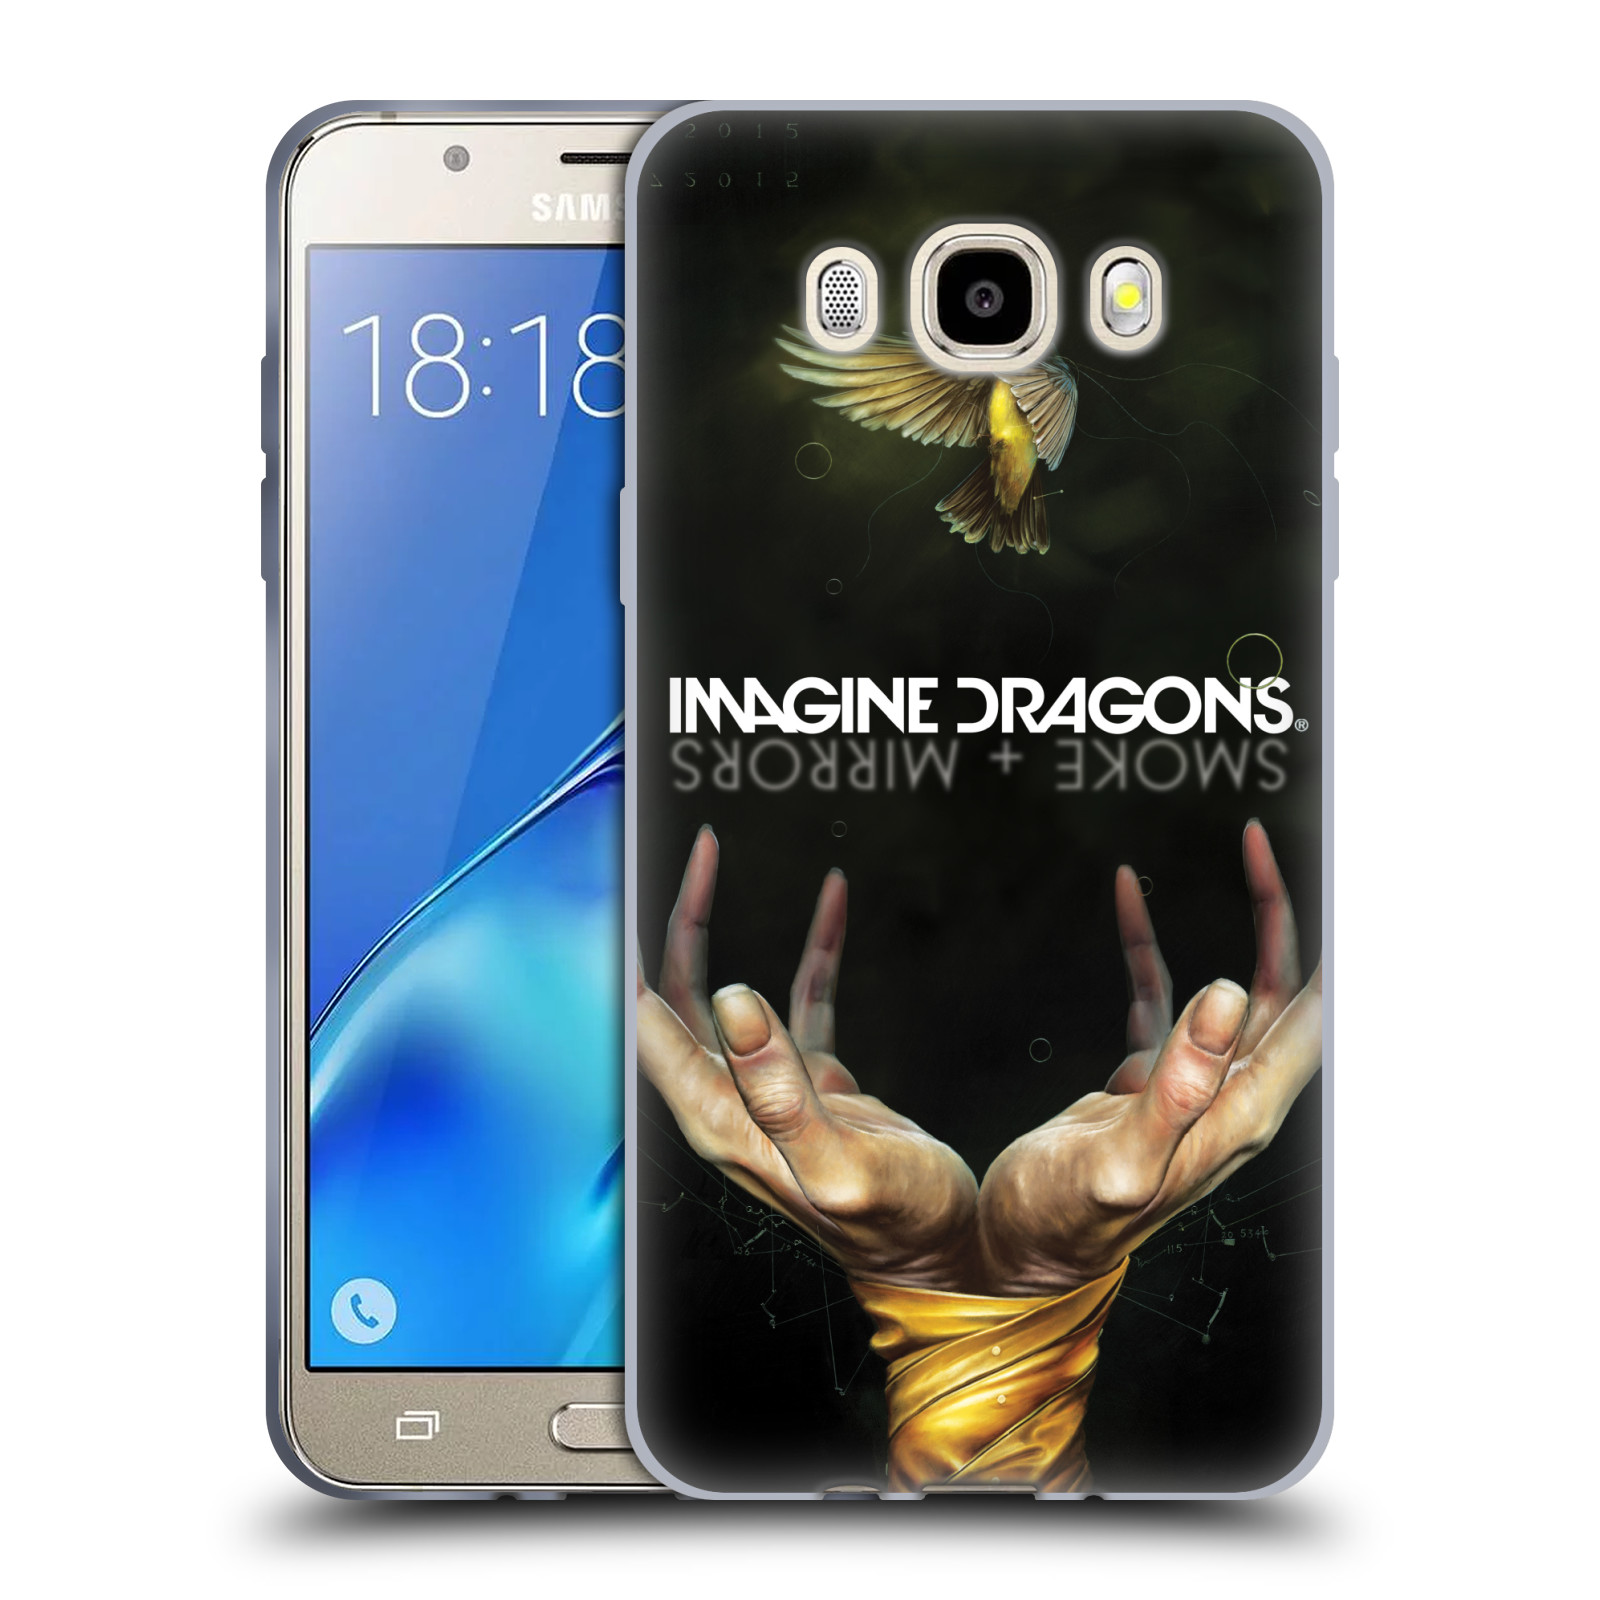 HEAD CASE silikonový obal na mobil Samsung Galaxy J5 2016 (J510) hudební skupina Imagine Dragons SMOKE and MIRRORS